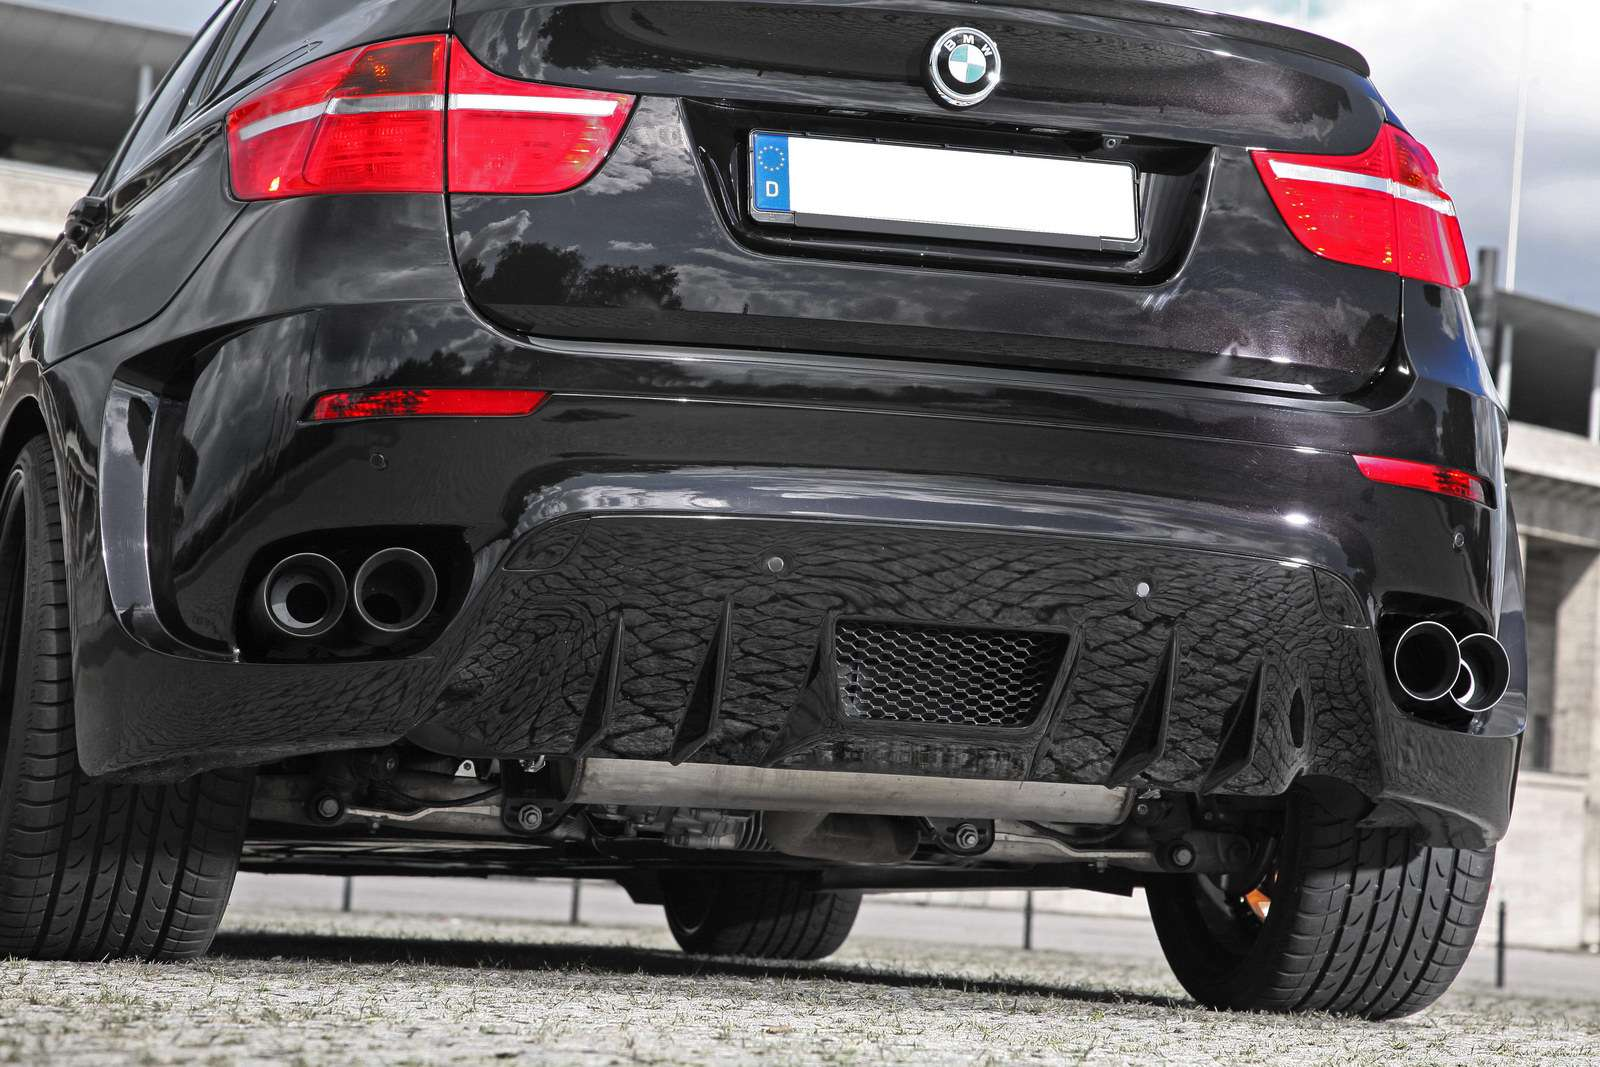 BMW X6 Bruiser od CLP Automotive fot listopad 2011